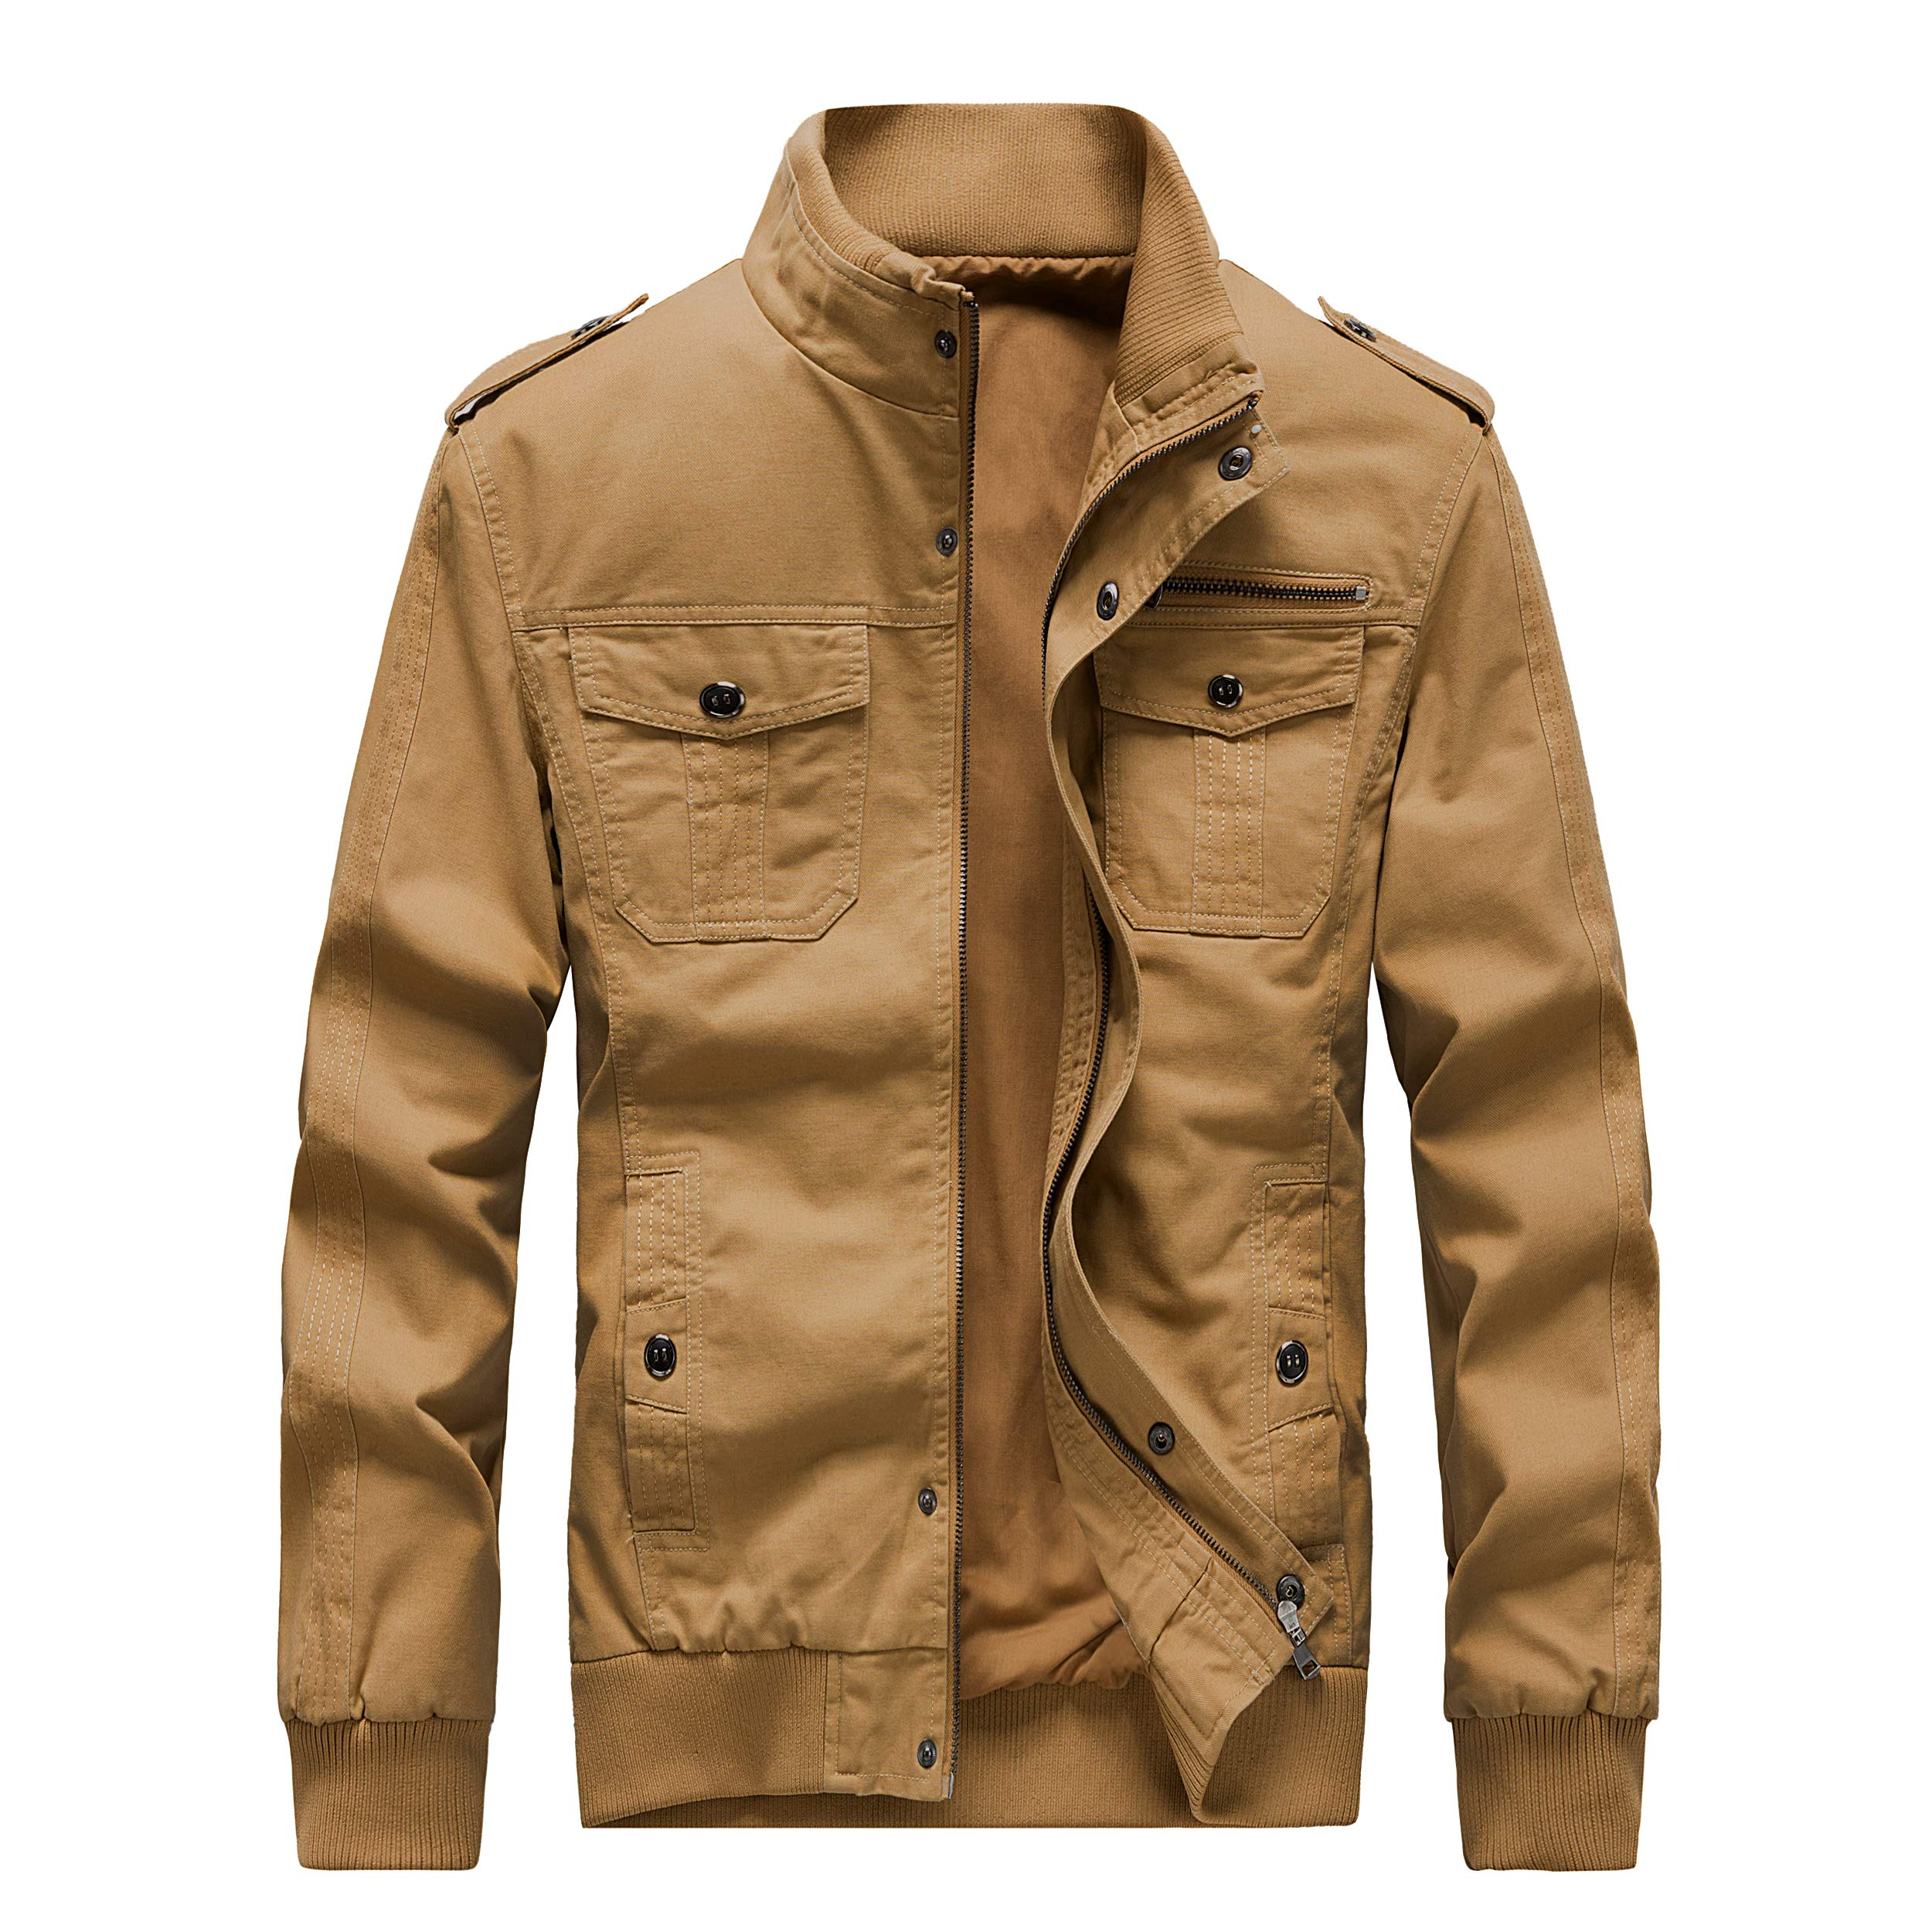 Best Rated in Men's Workout & Training Jackets & Helpful